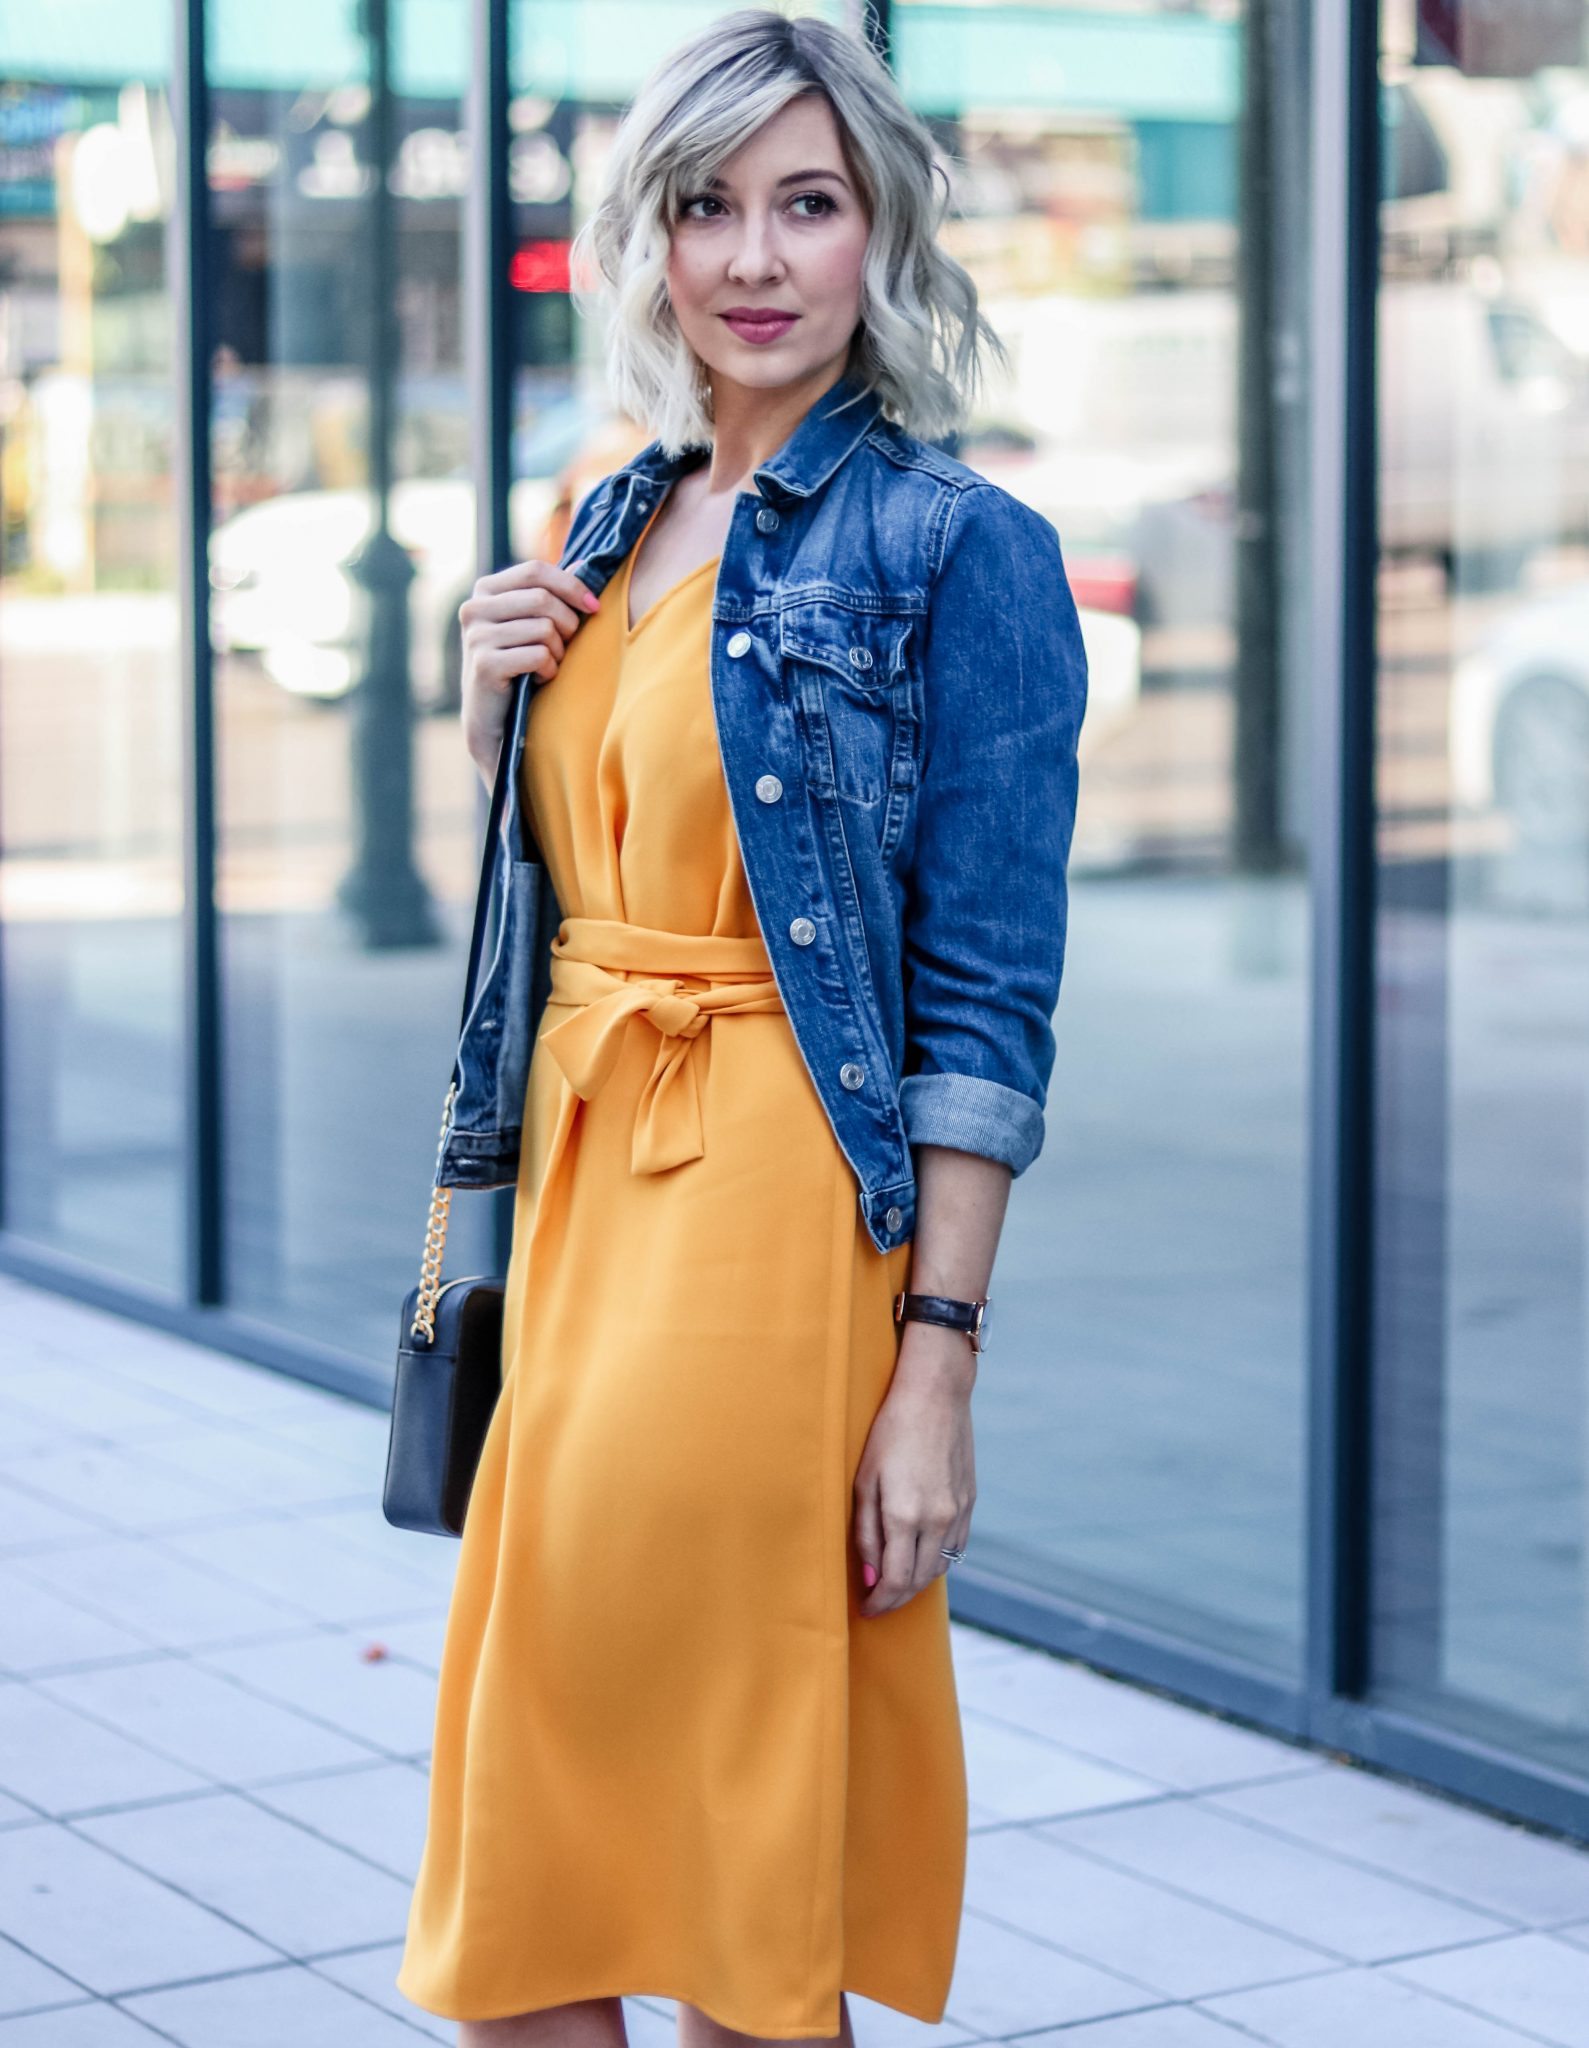 yellow dress & denim jacket 3